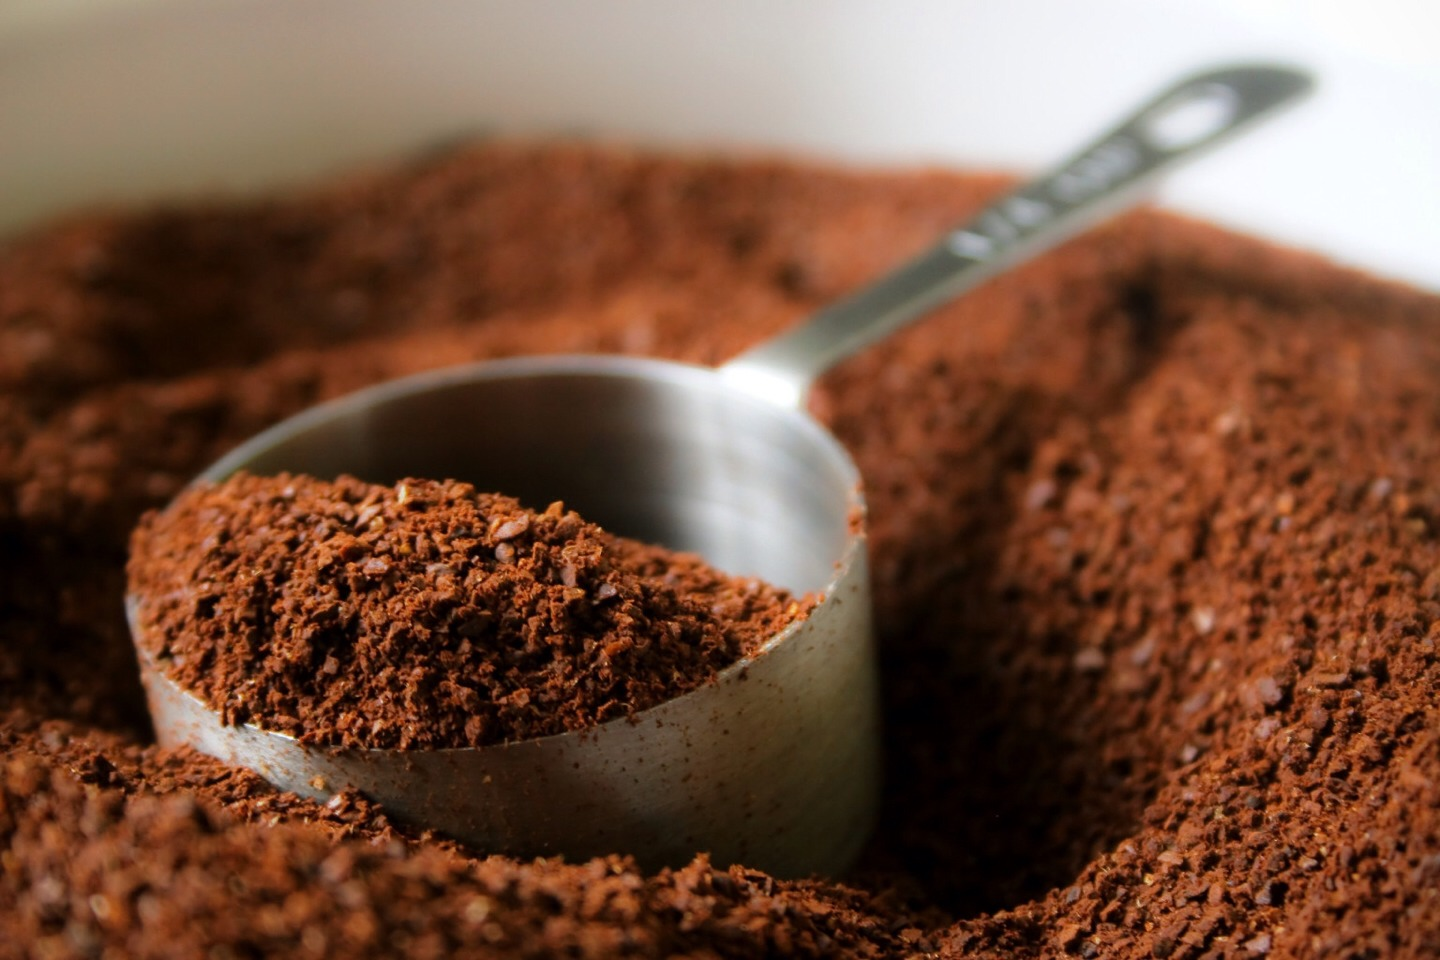 Coffee grounds! Mix coffee grounds with hot water in the shower for 10 minutes ( coffee grounds increase circulation, therefore treating cellulite). This was tested and shown that after 4 weeks, there were firmer skin.